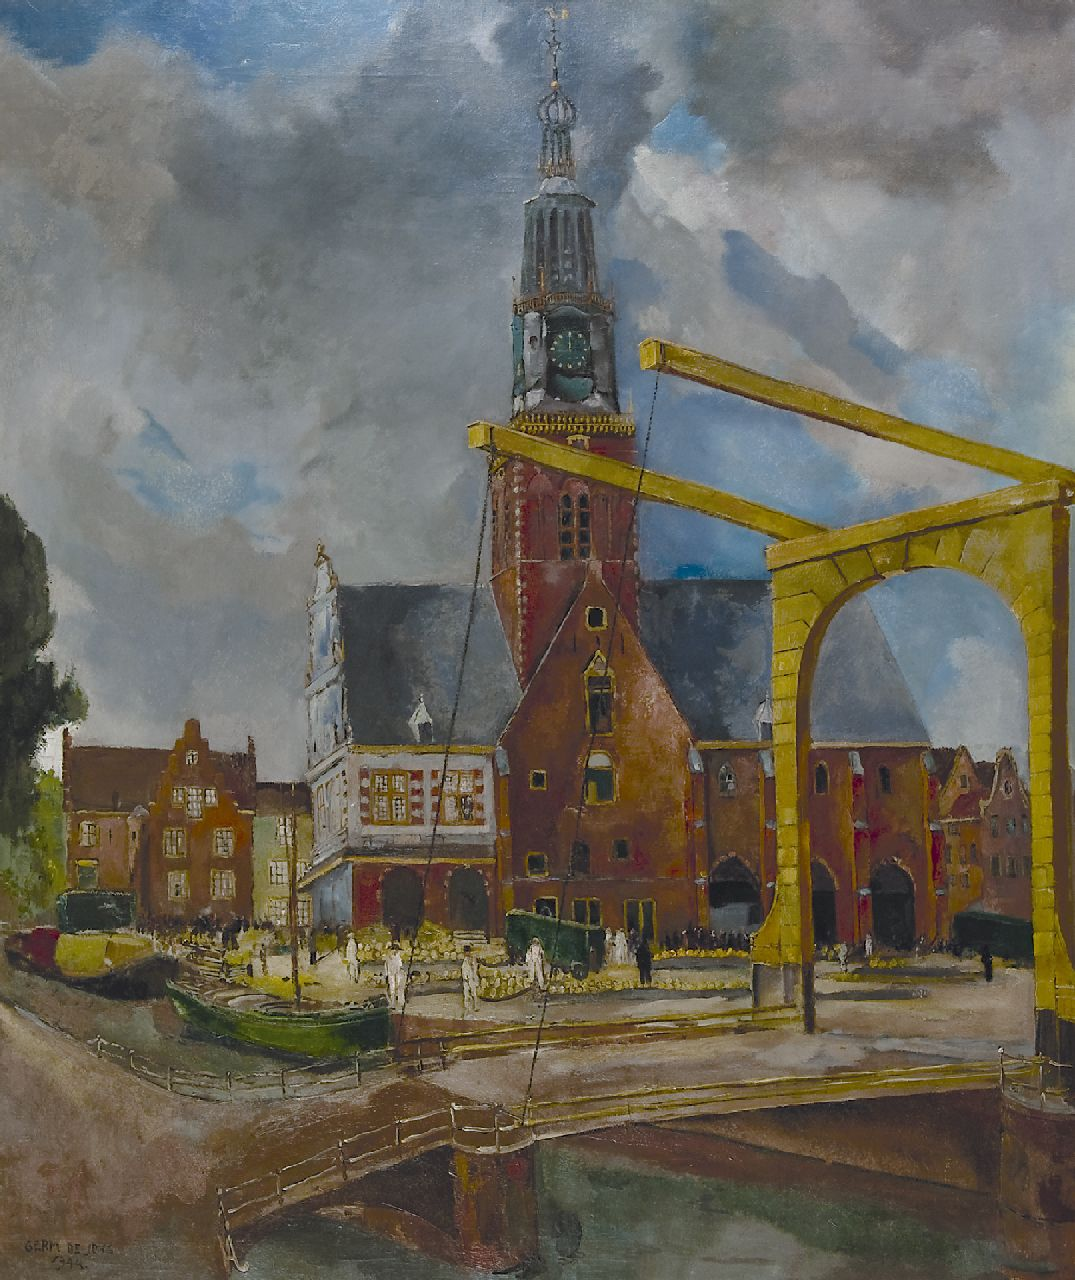 Jong G. de | Gerben 'Germ' de Jong | Paintings offered for sale | The Cheese market, Alkmaar, oil on canvas 117.0 x 99.3 cm, signed l.l. and dated 1944